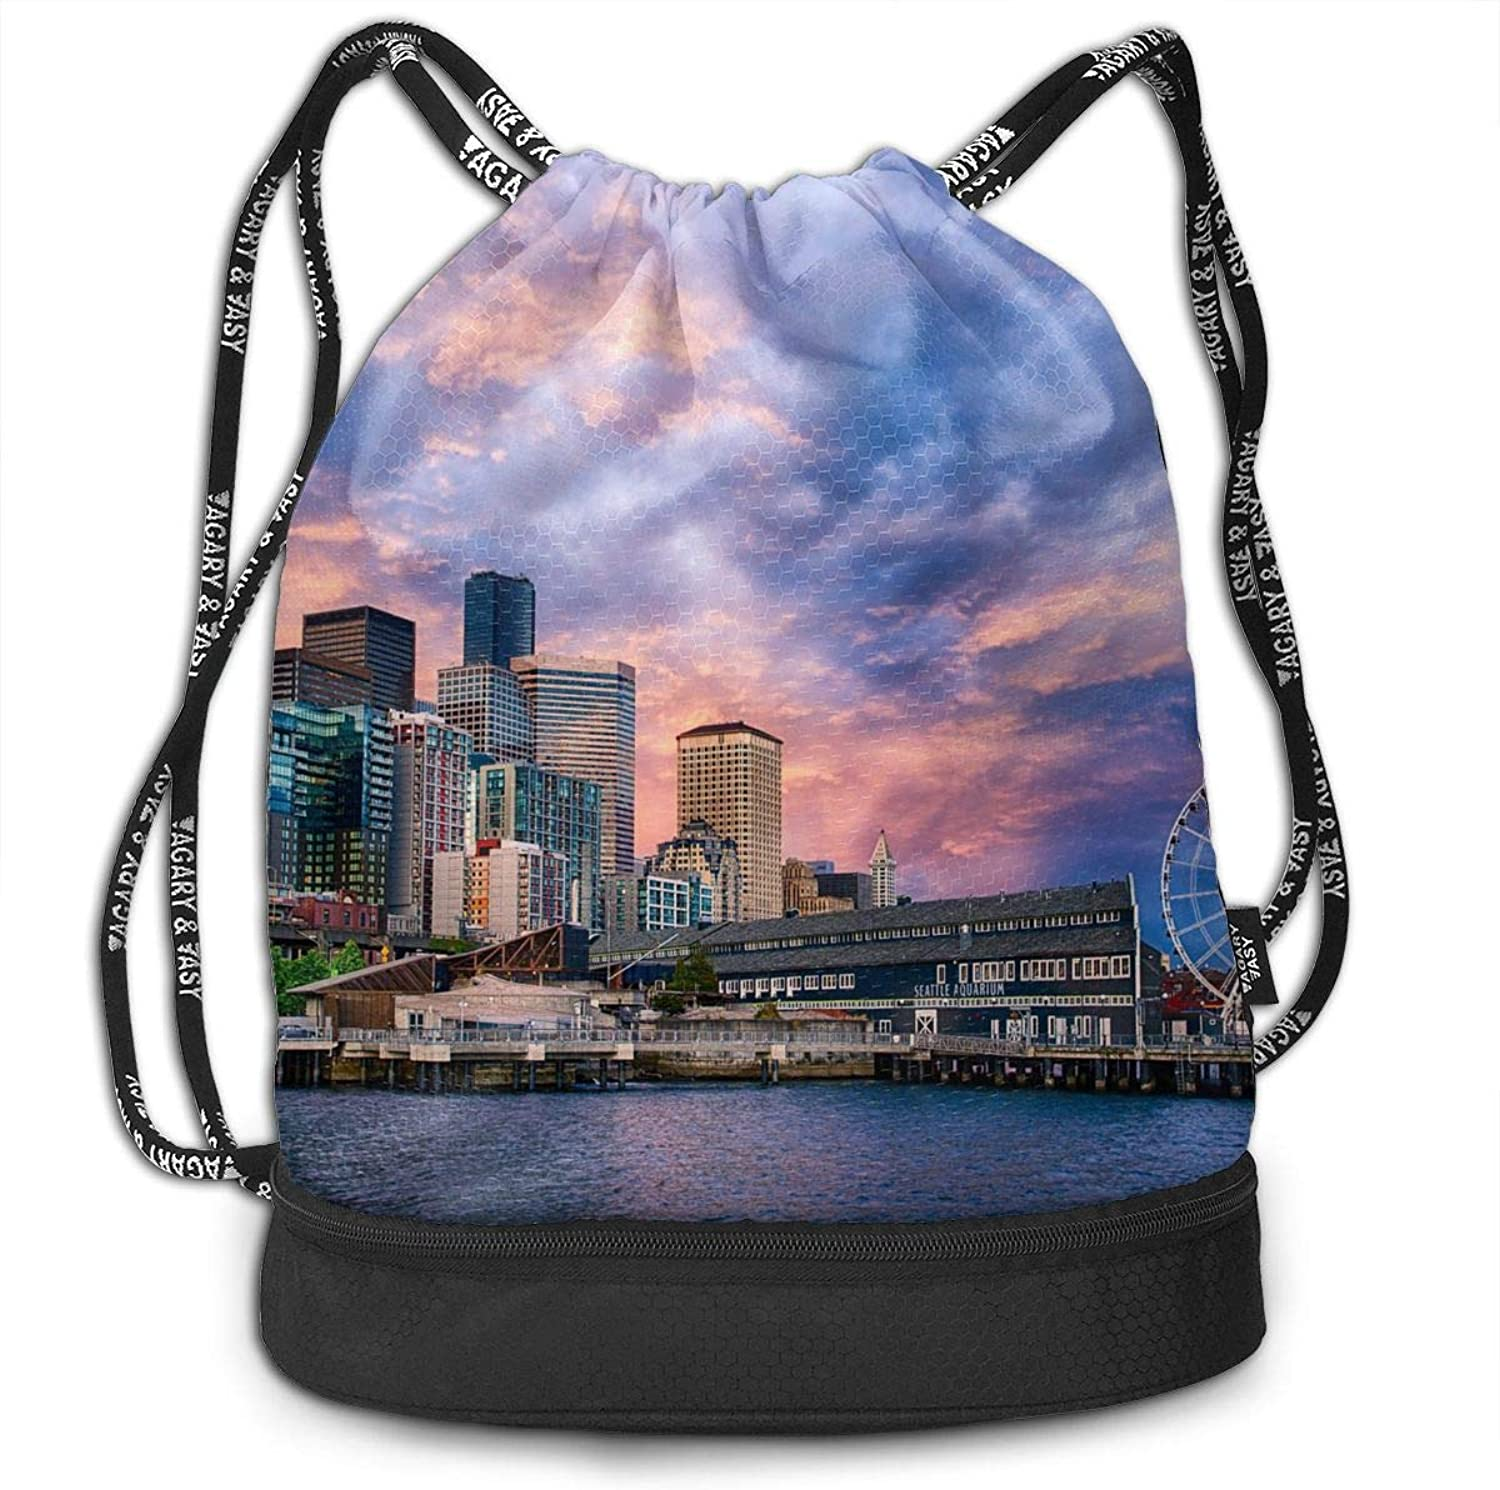 Gymsack Ferris Wheel in The Modern City Print Drawstring Bags  Simple School String Bag